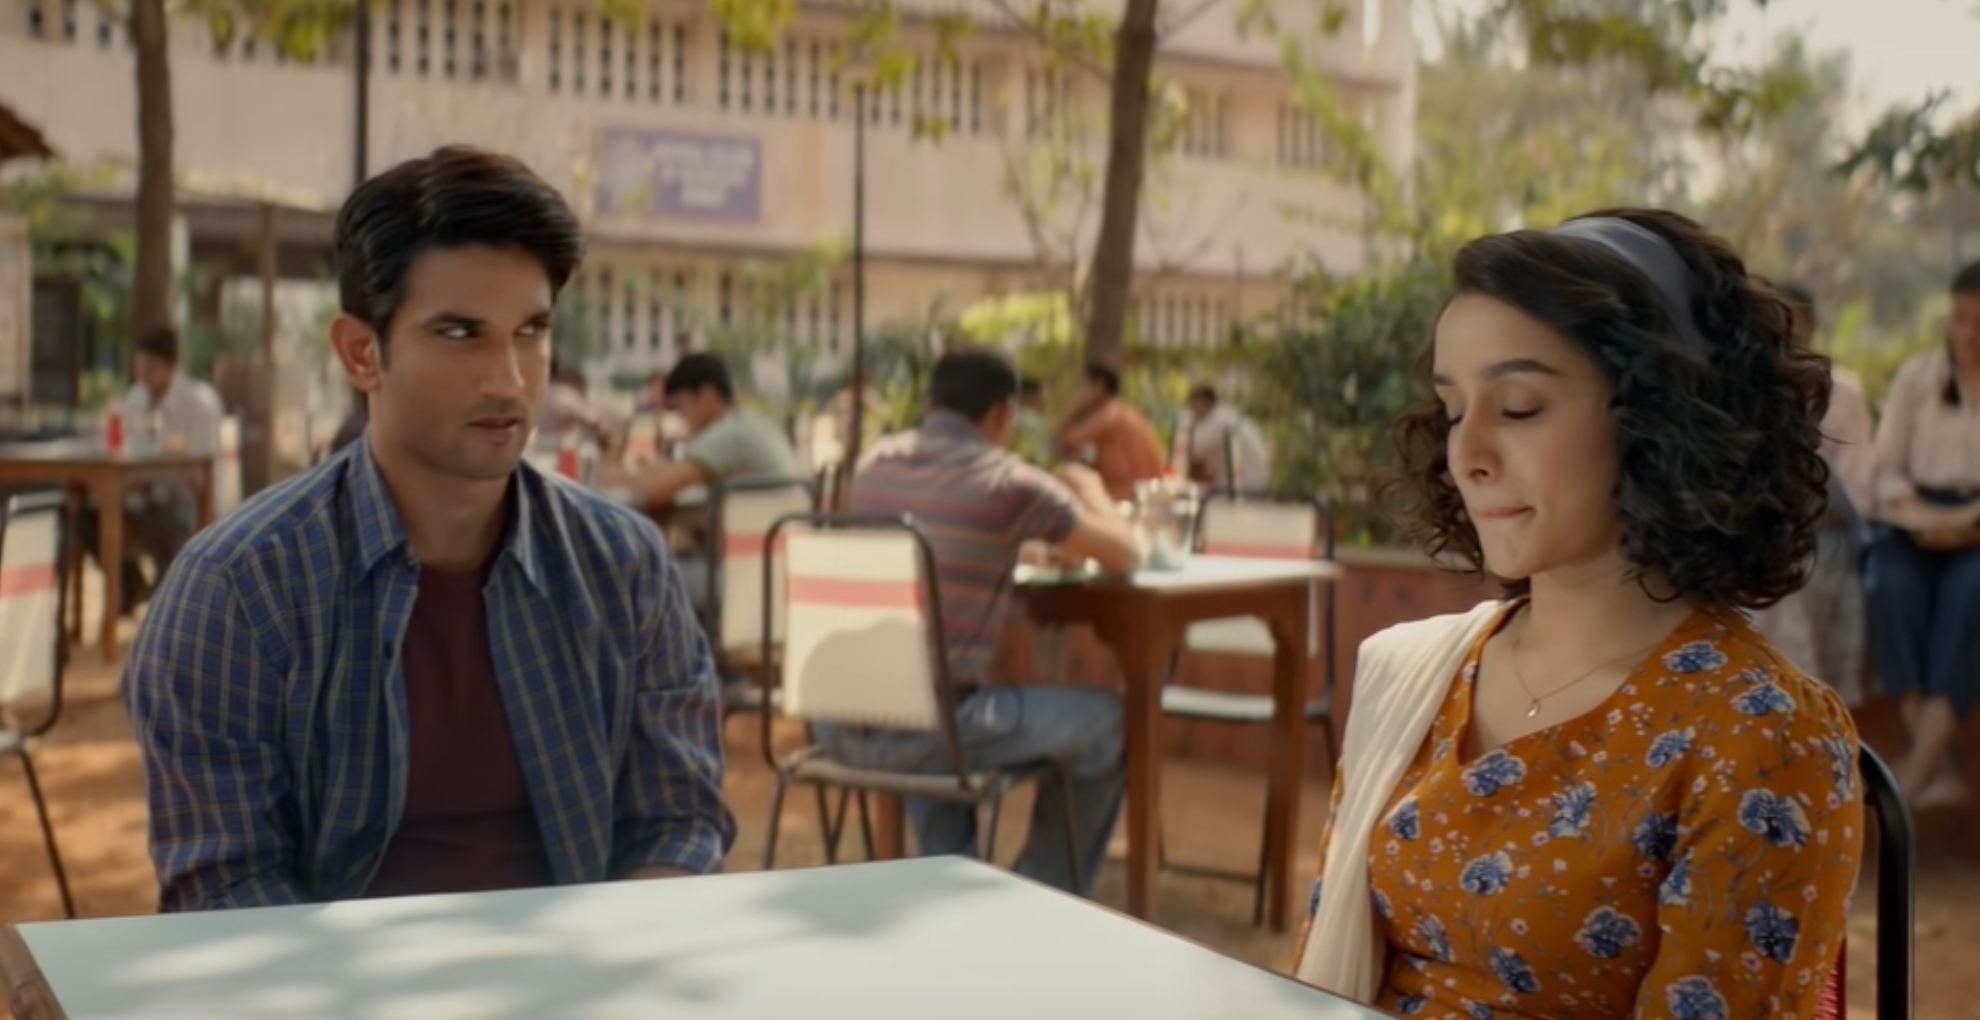 Chhichhore torrent Movie Download In Hindi For 720p, 1080p